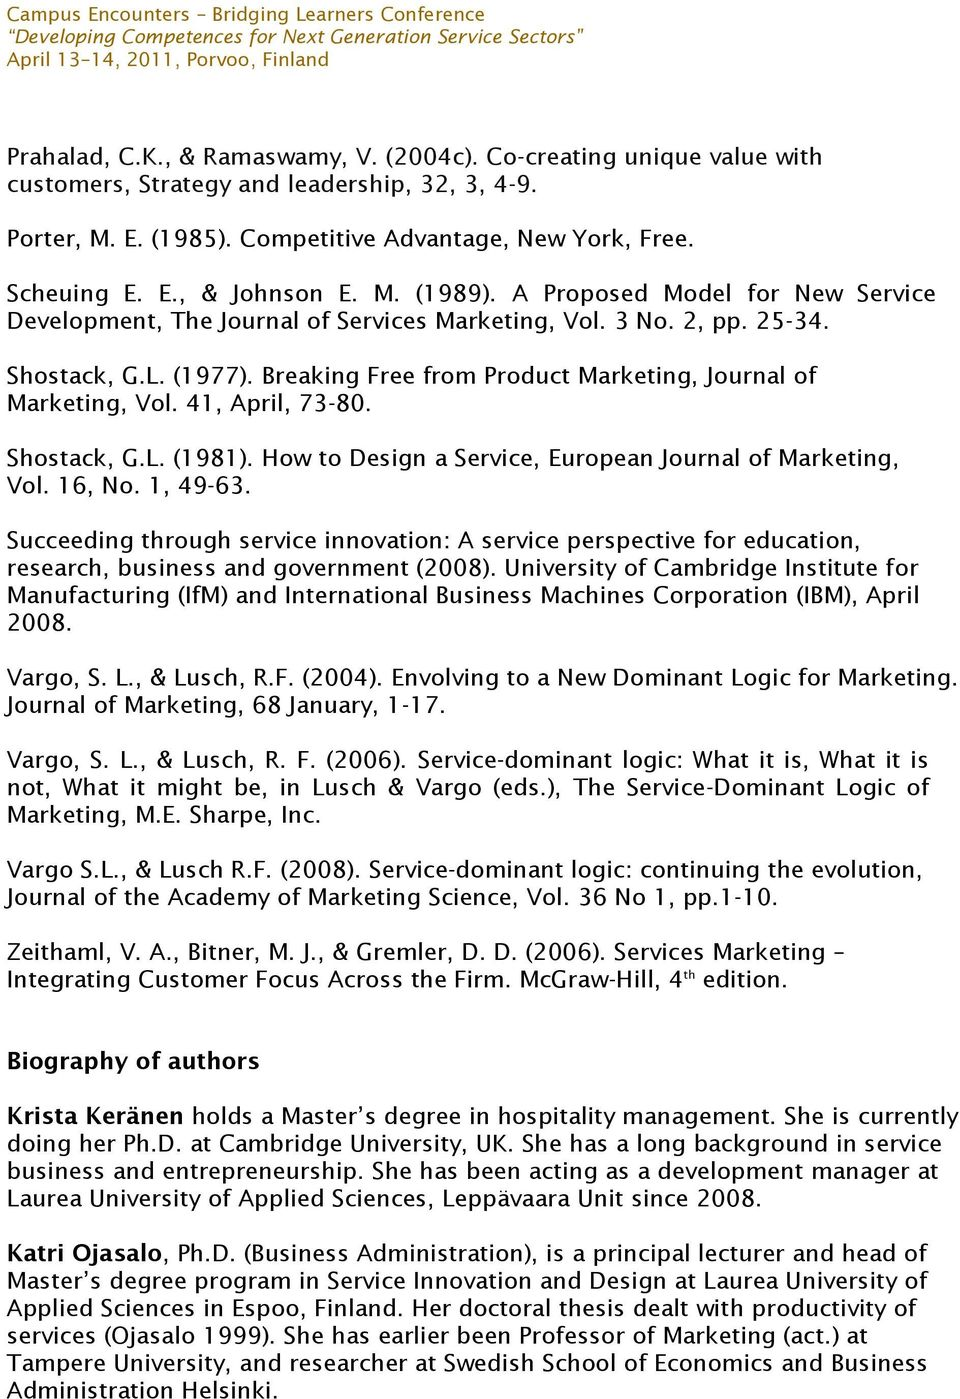 Breaking Free from Product Marketing, Journal of Marketing, Vol. 41, April, 73-80. Shostack, G.L. (1981). How to Design a Service, European Journal of Marketing, Vol. 16, No. 1, 49-63.